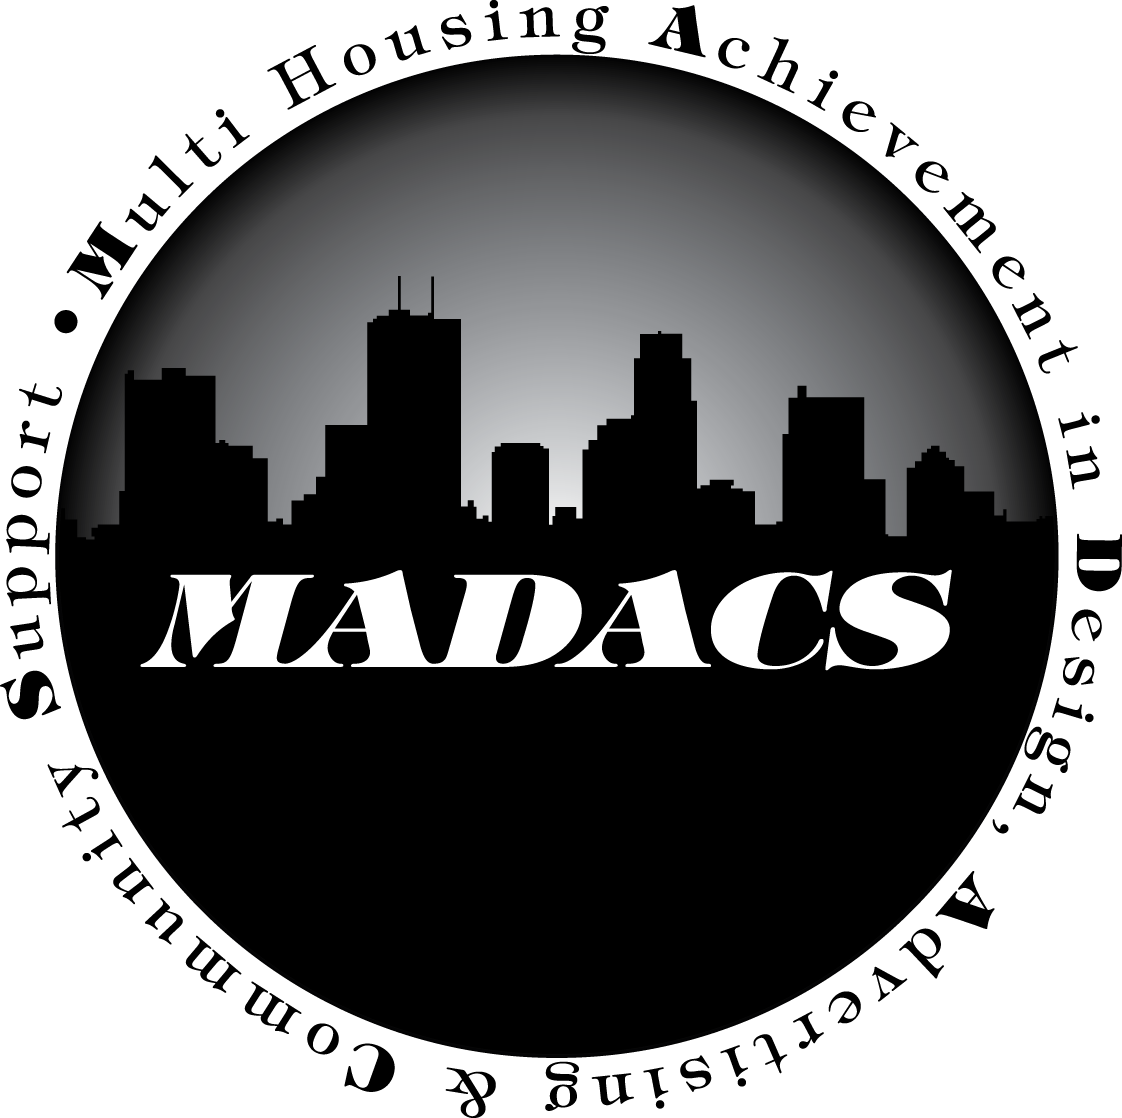 Congratulations To Our 2017 MADACS Nominees!